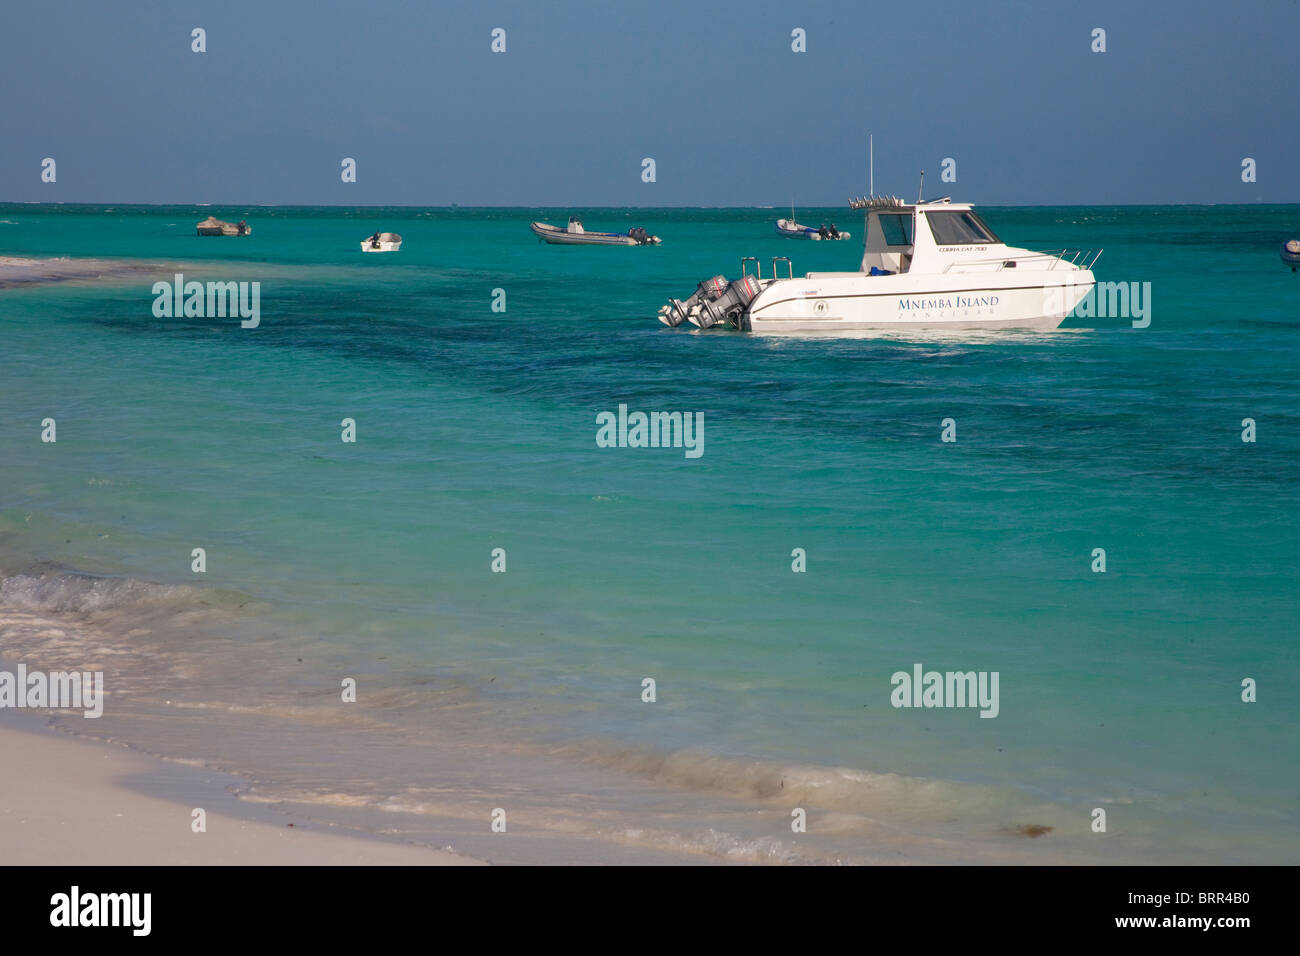 Fishing boat with two outboard motors moored in shallow water off Mnemba island - Stock Image